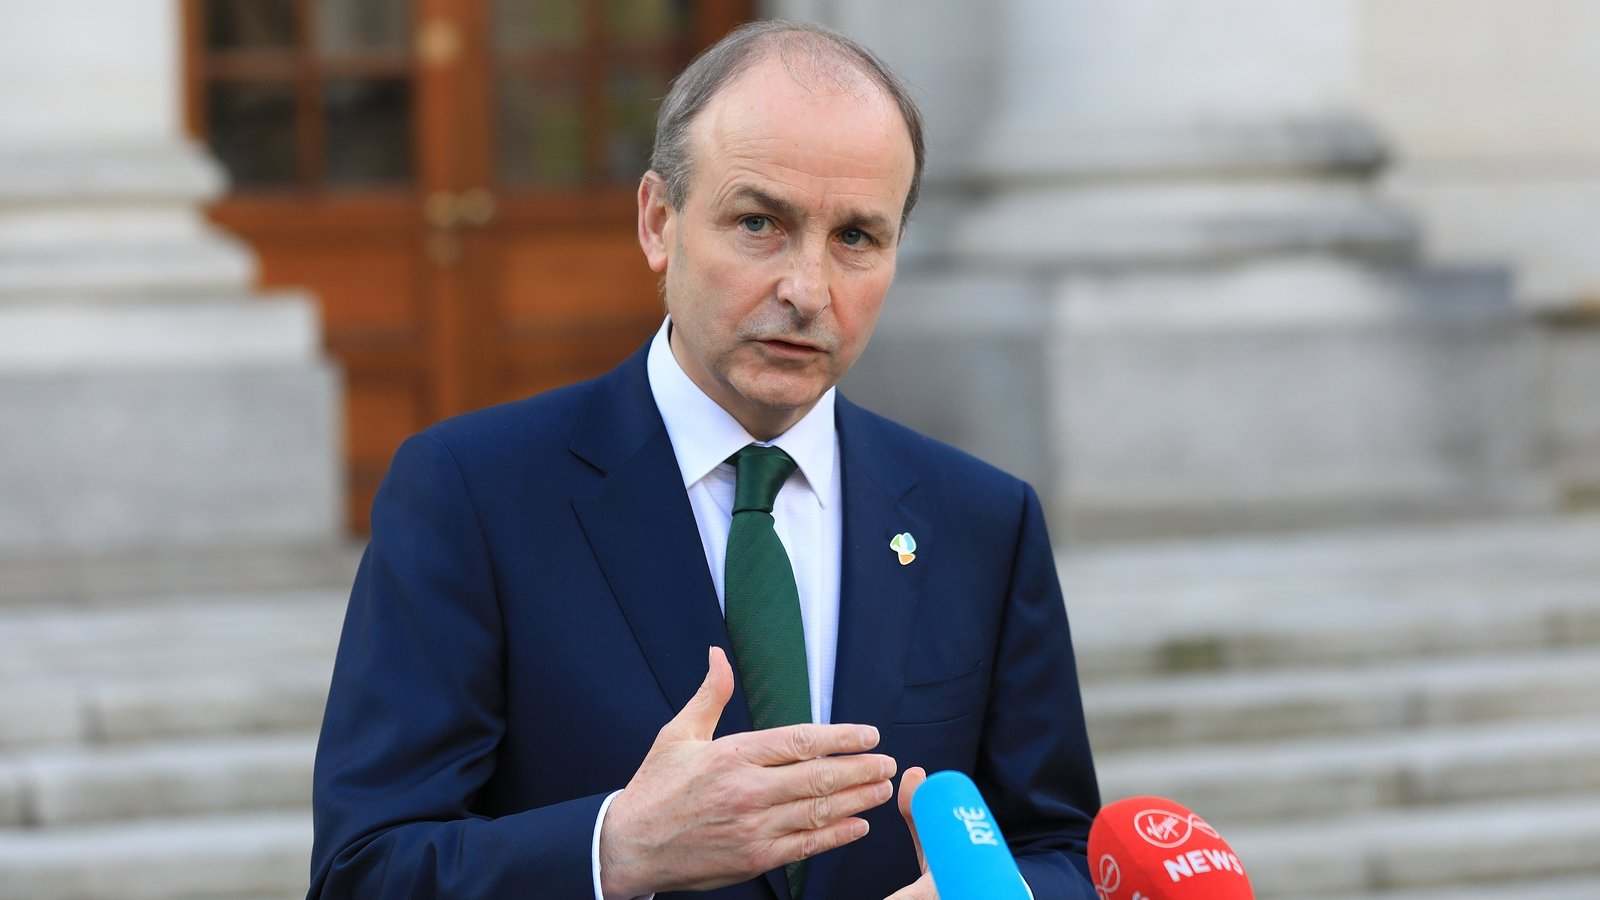 Letters to Taoiseach show frustration at Covid measures